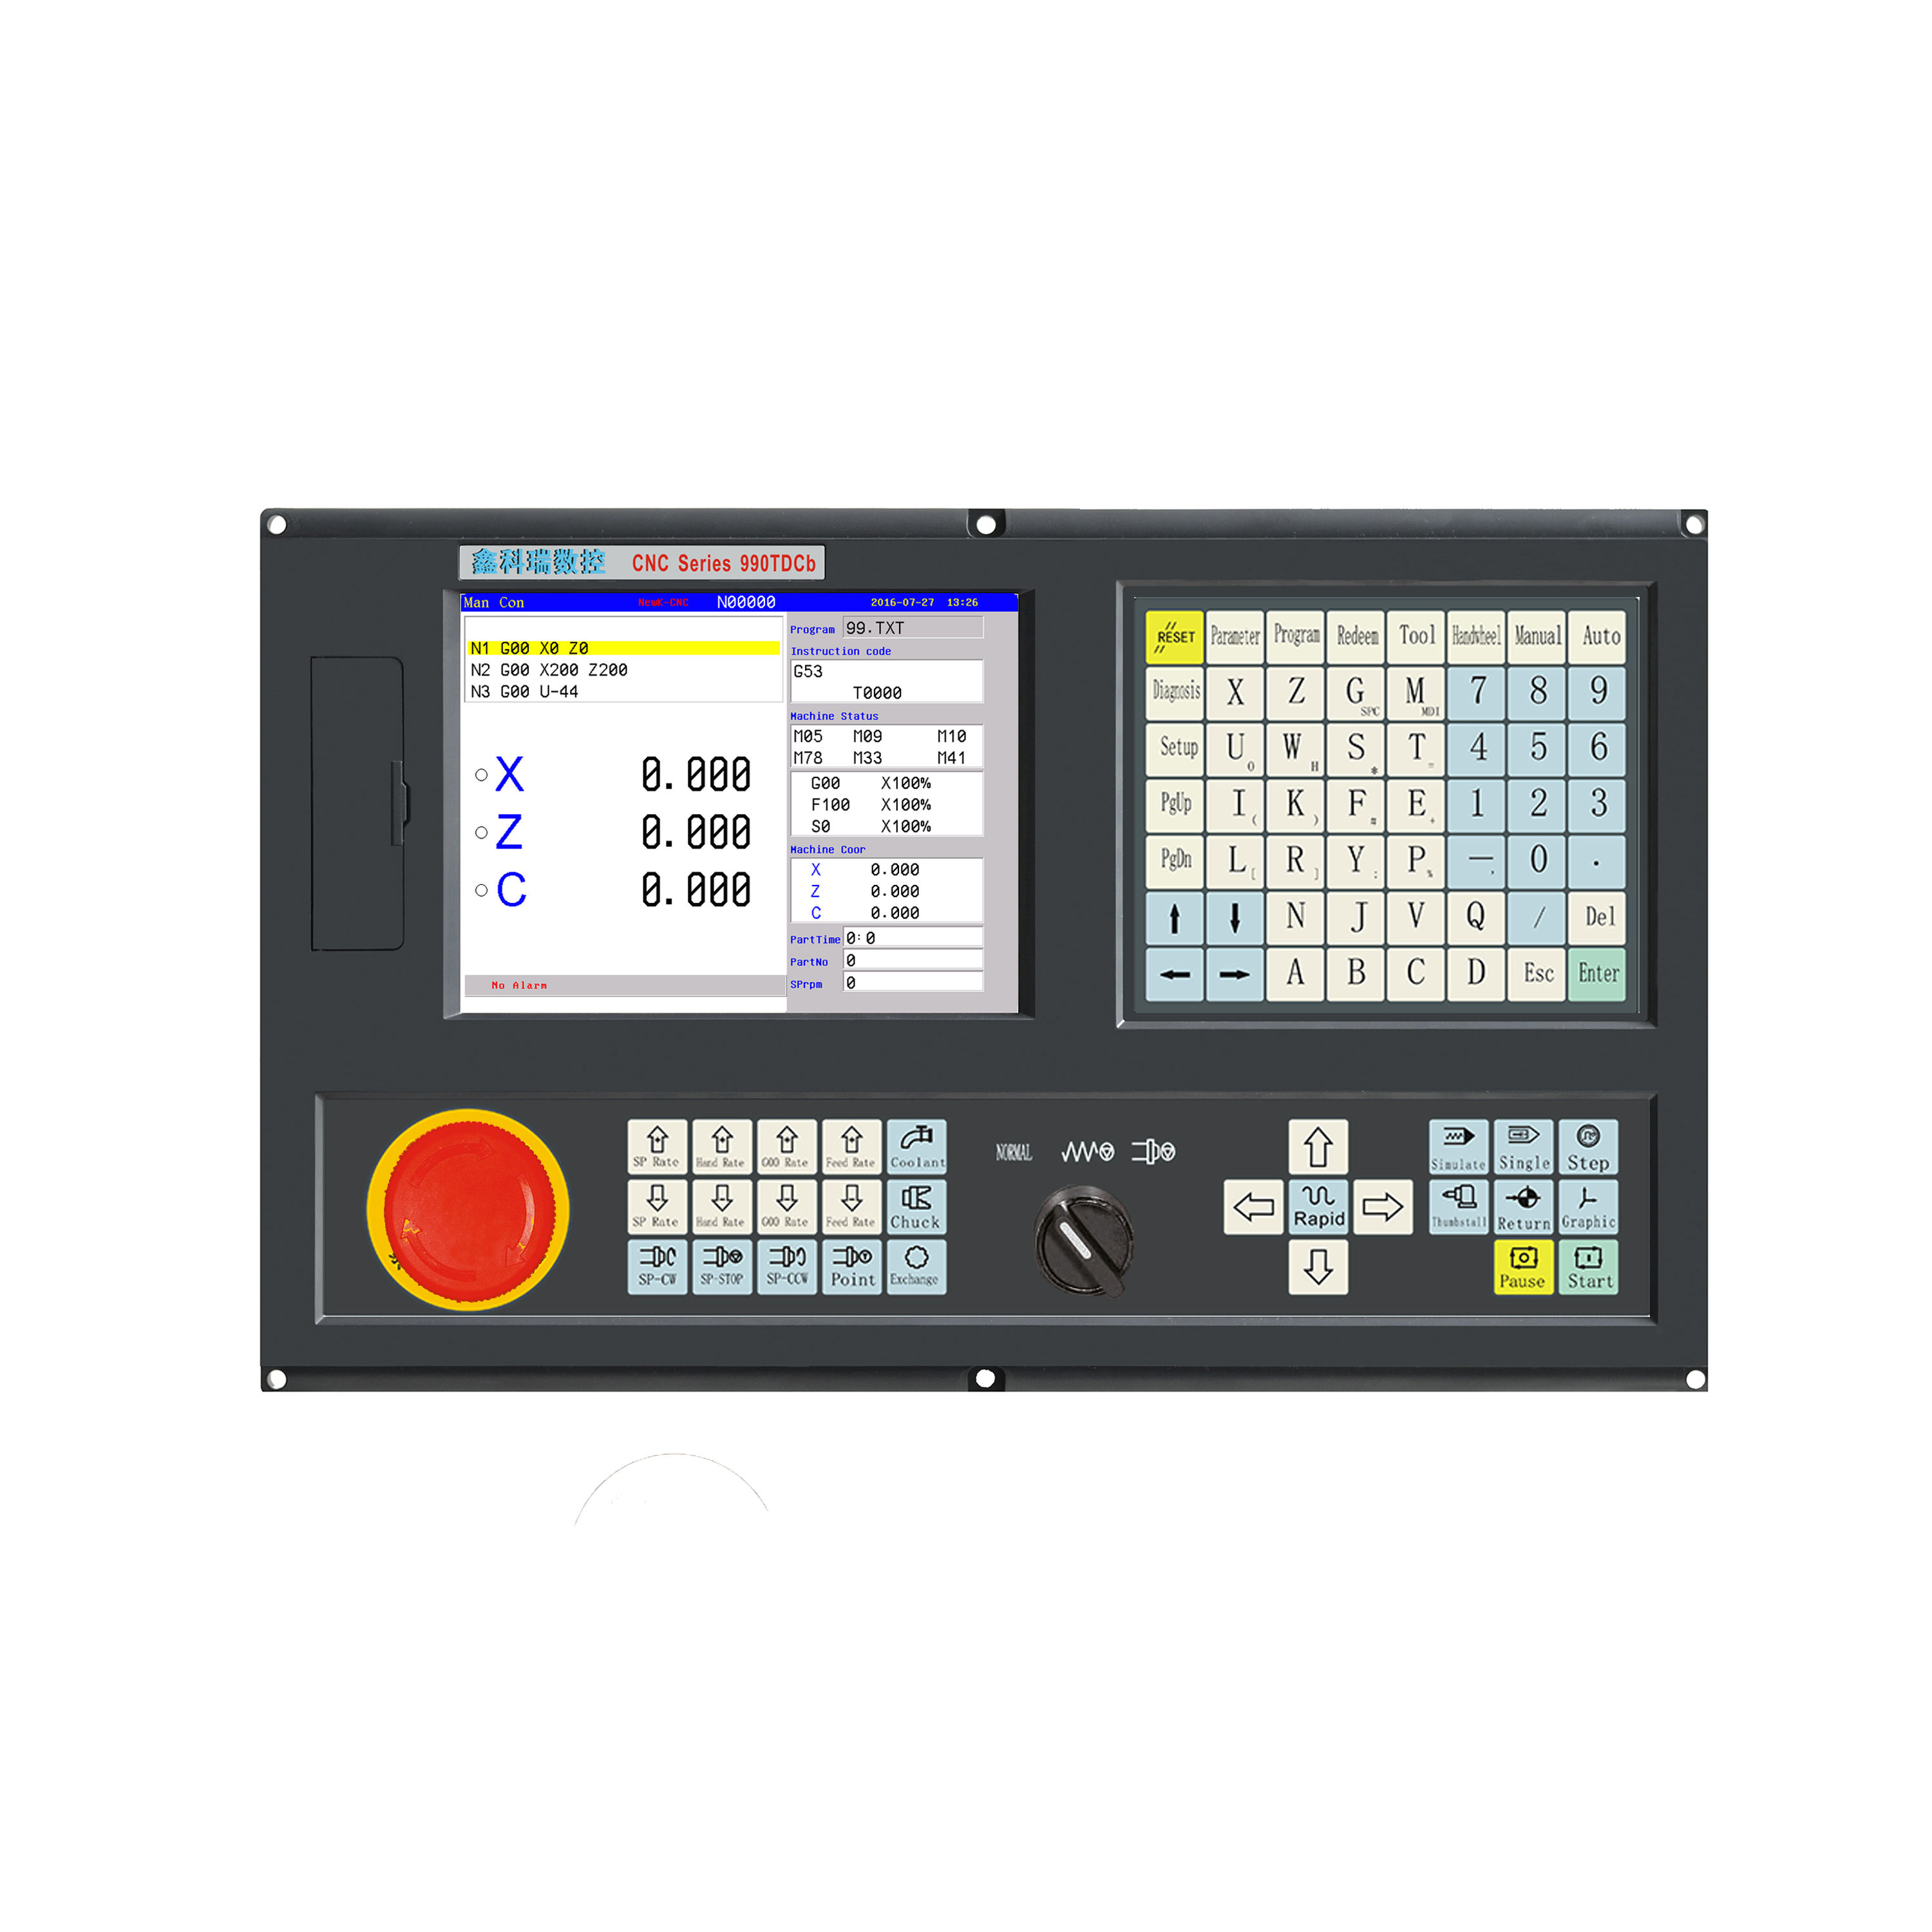 axis cnc controller linear or glass scale same as fagor three axis cnc control usb router controller box